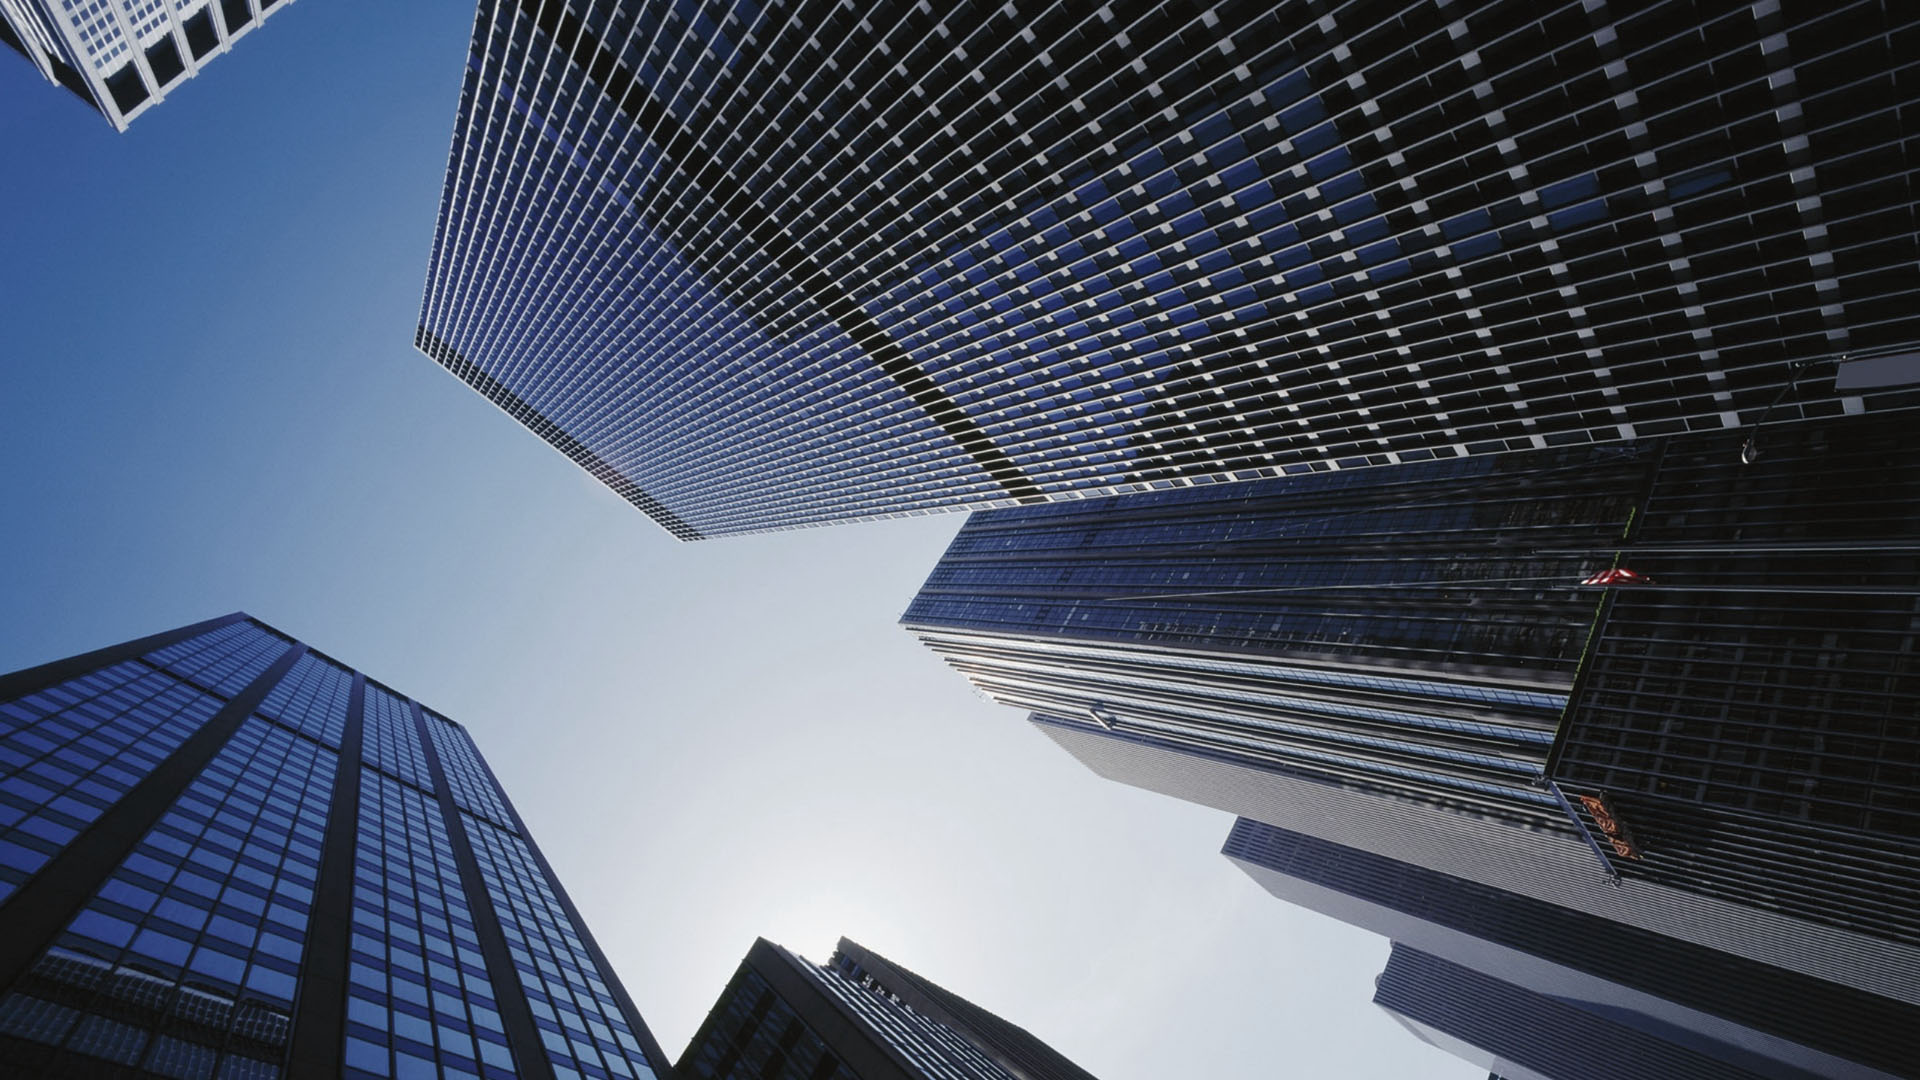 Skyscraper-Beautiful-Architecture-Wallpaper1